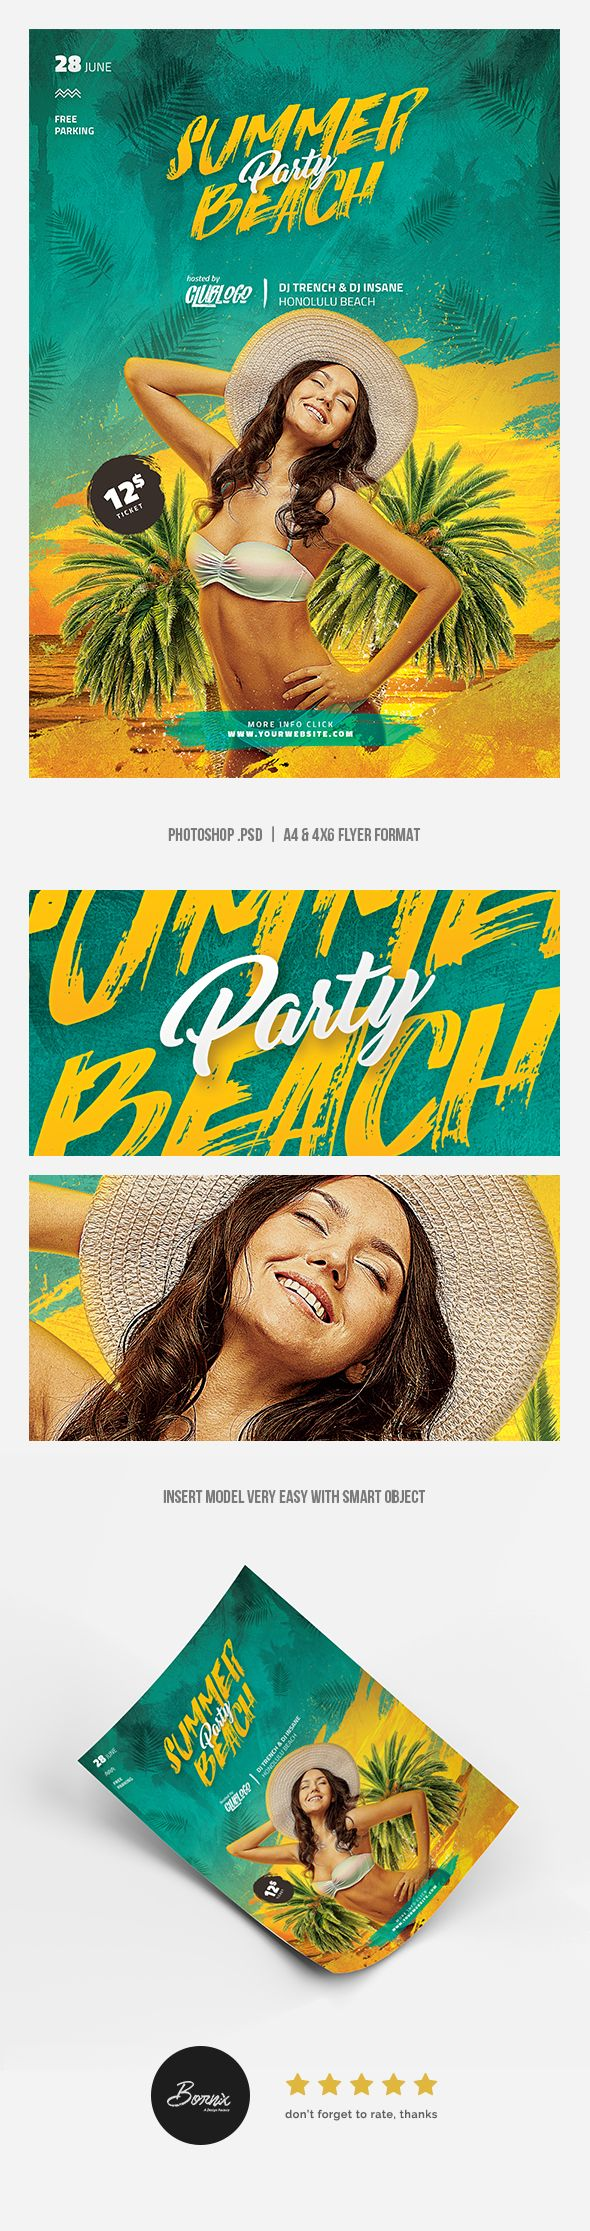 Summer Beach Party Photoshop PSD flyer template https://graphicriver.net/item/summer-beach-party-flyer/20068002 #graphicriver #flyer #poster #template #photoshop #psd #summer #holidays #party #beach #model #bikini #sexy #hot